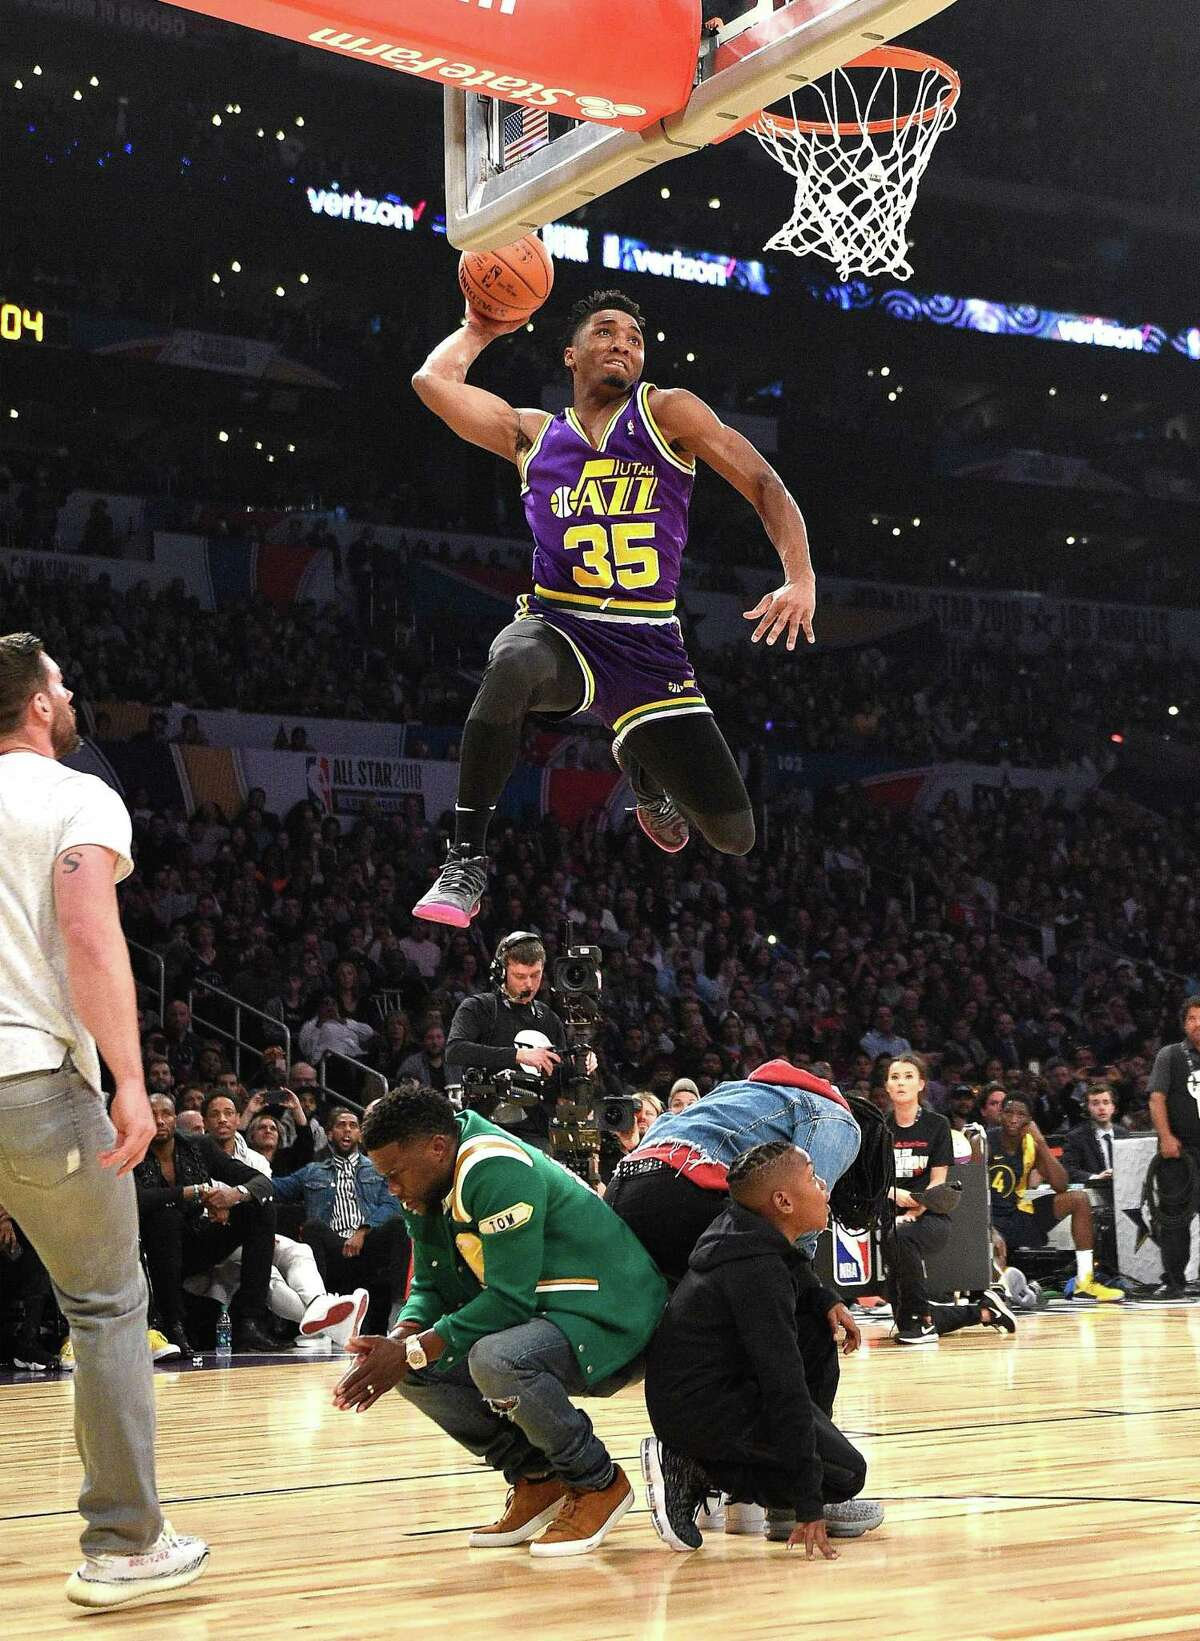 Utah's Donovan Mitchell dunked over Kevin Hart, Jordan Mitchell and Hendrix Hart on his way to winning the 2018 Verizon Slam Dunk Contest at Staples Center Saturday in Los Angeles.